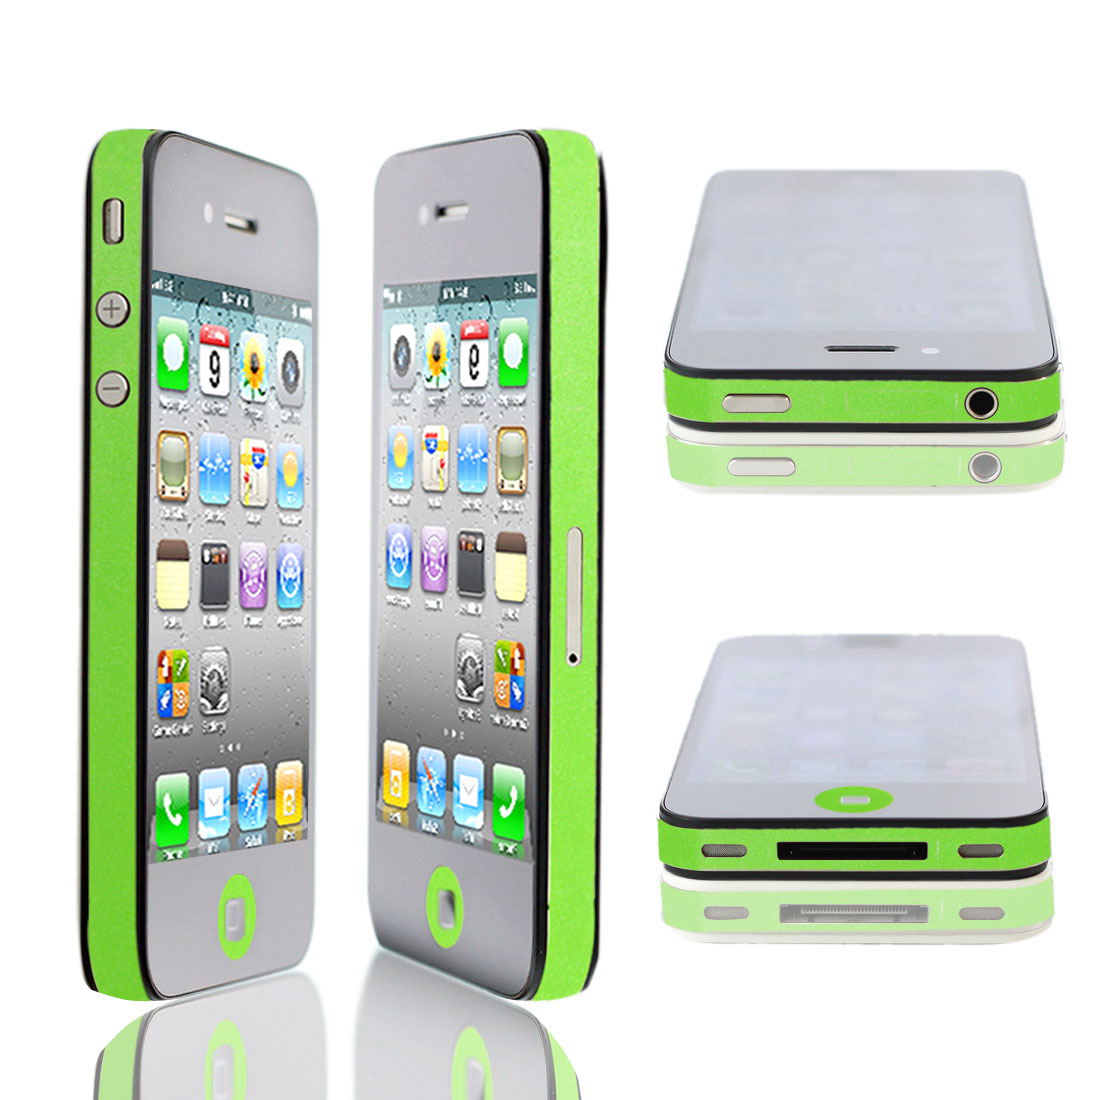 Green Bumper Side Edge Skin Decal Sticker for Apple iPhone 4 4G 4GS 4S